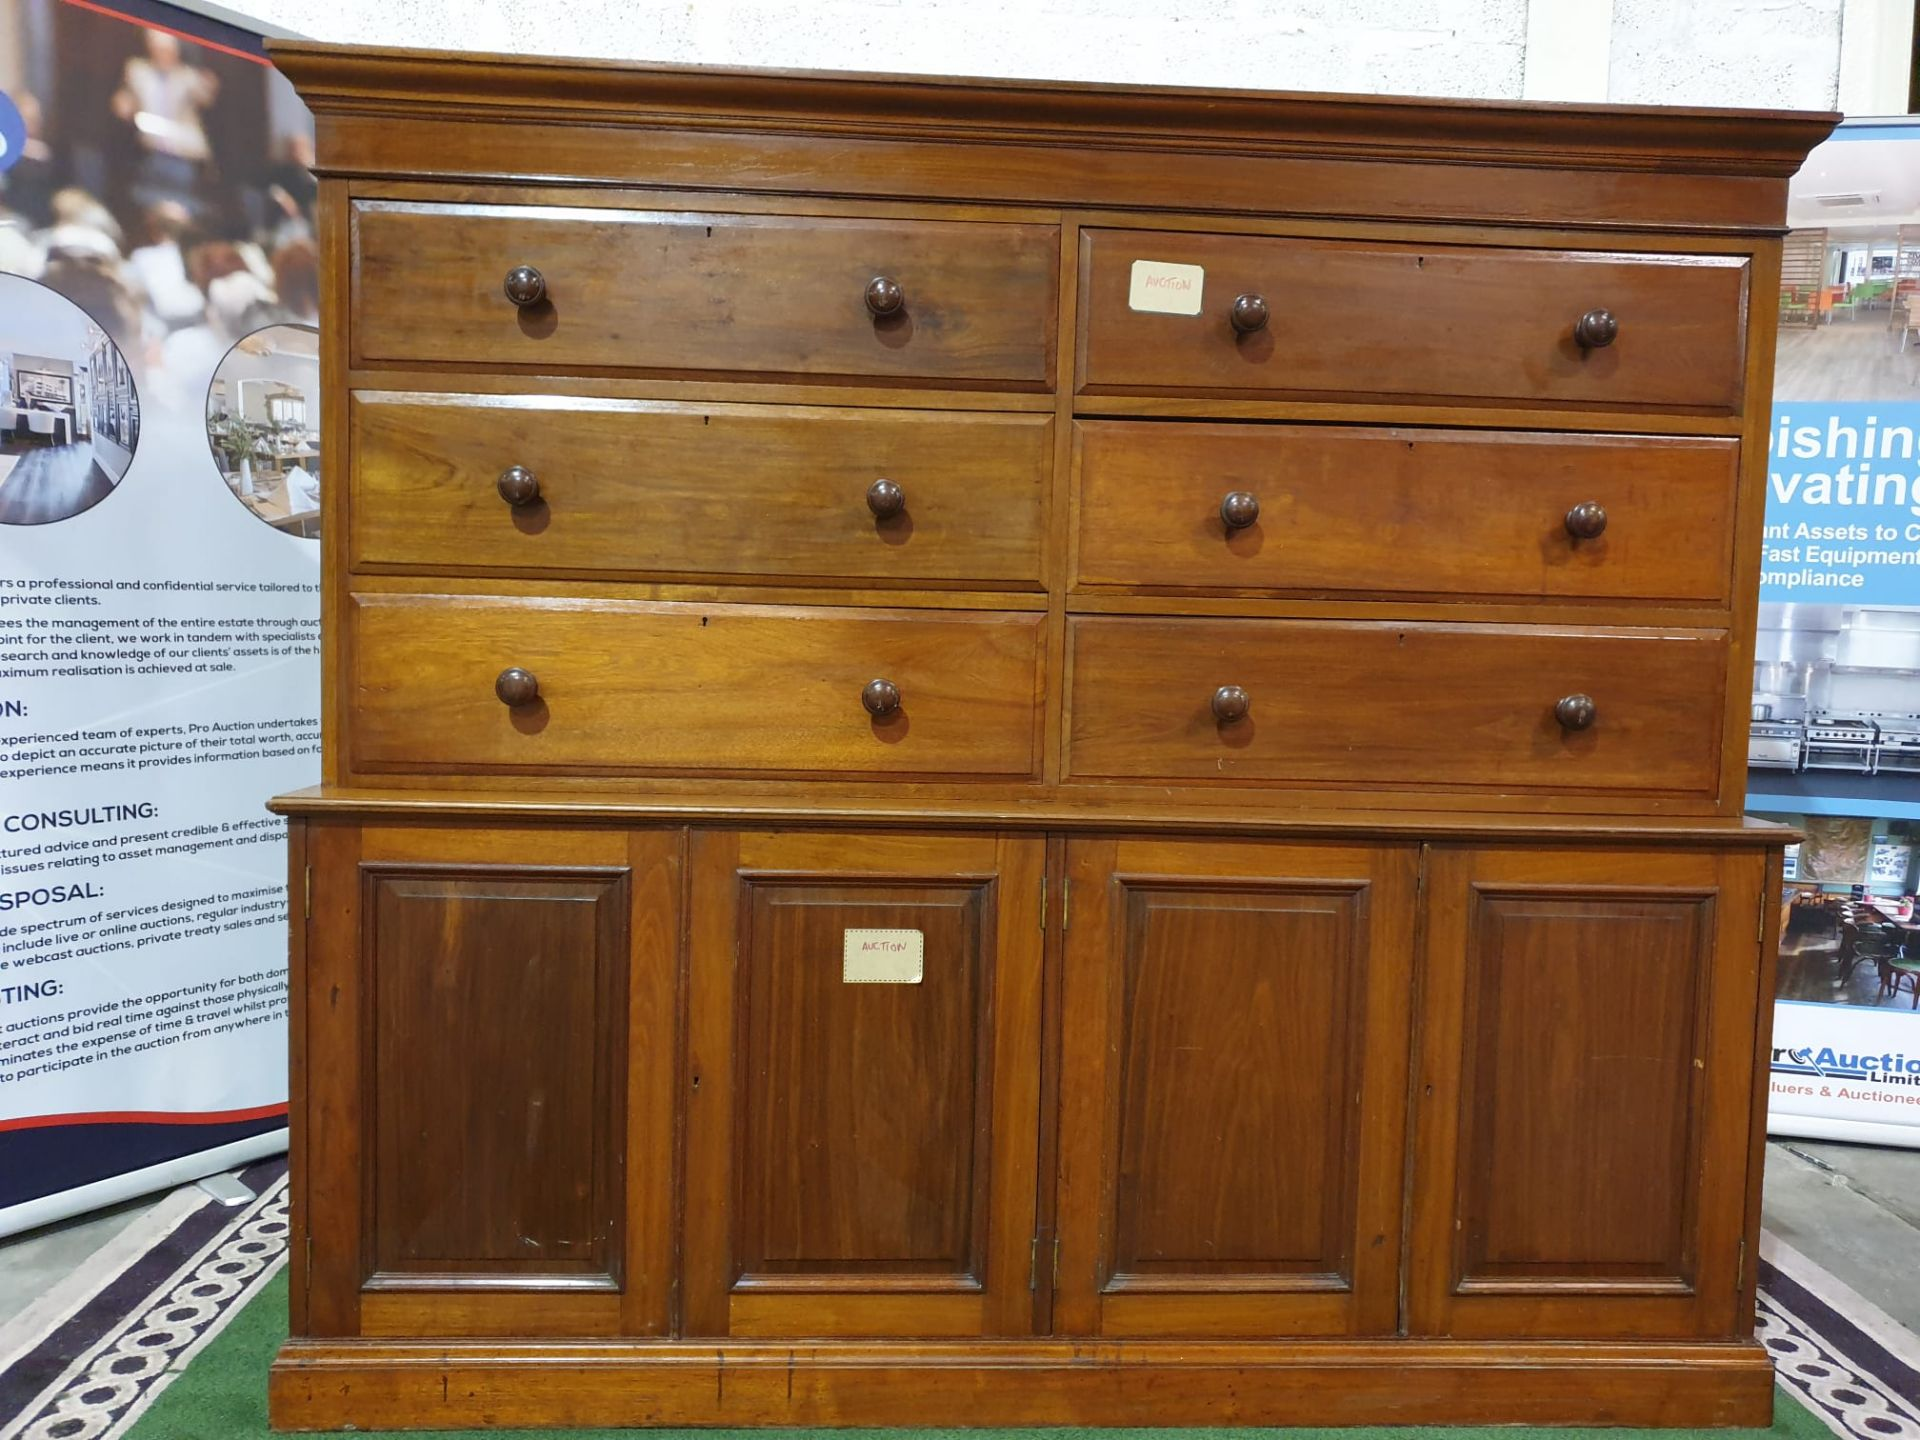 A late Victorian / early Edwardian mahogany chest combined chest of drawers and cupboard. The - Image 2 of 5